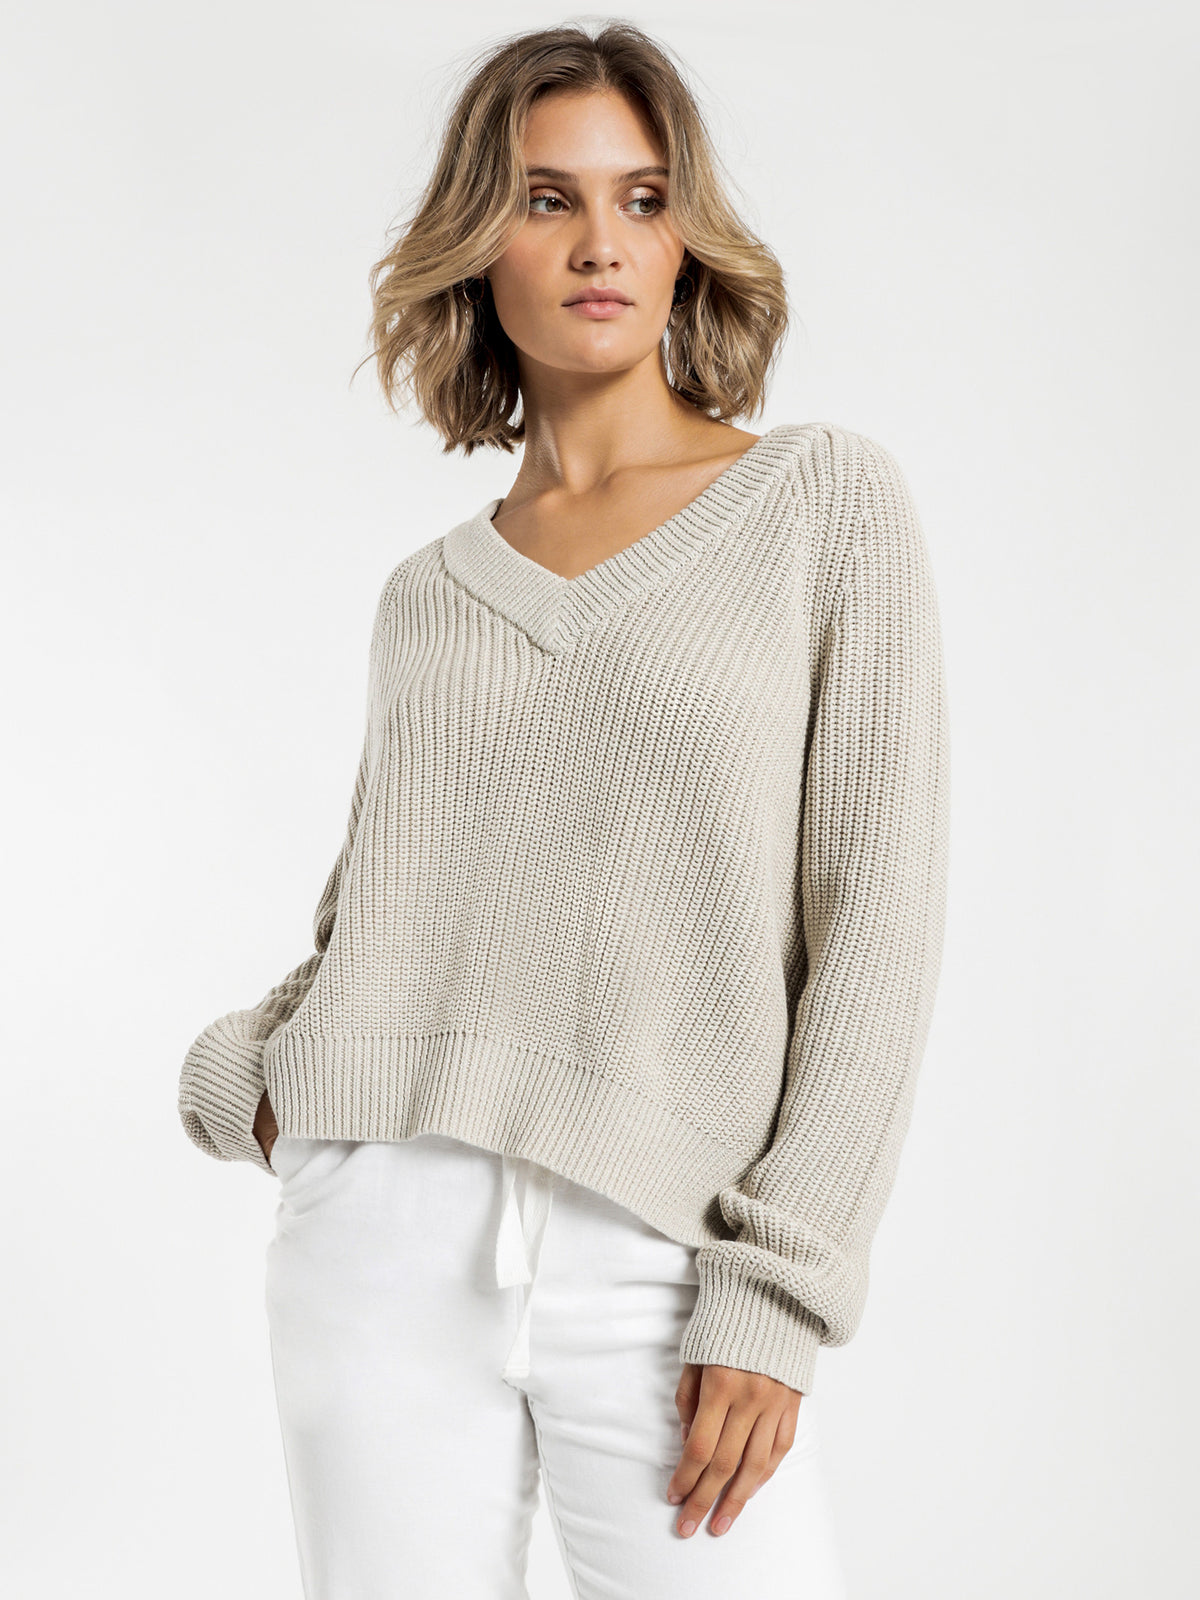 Kimber V Neck Knit in Cream Marle